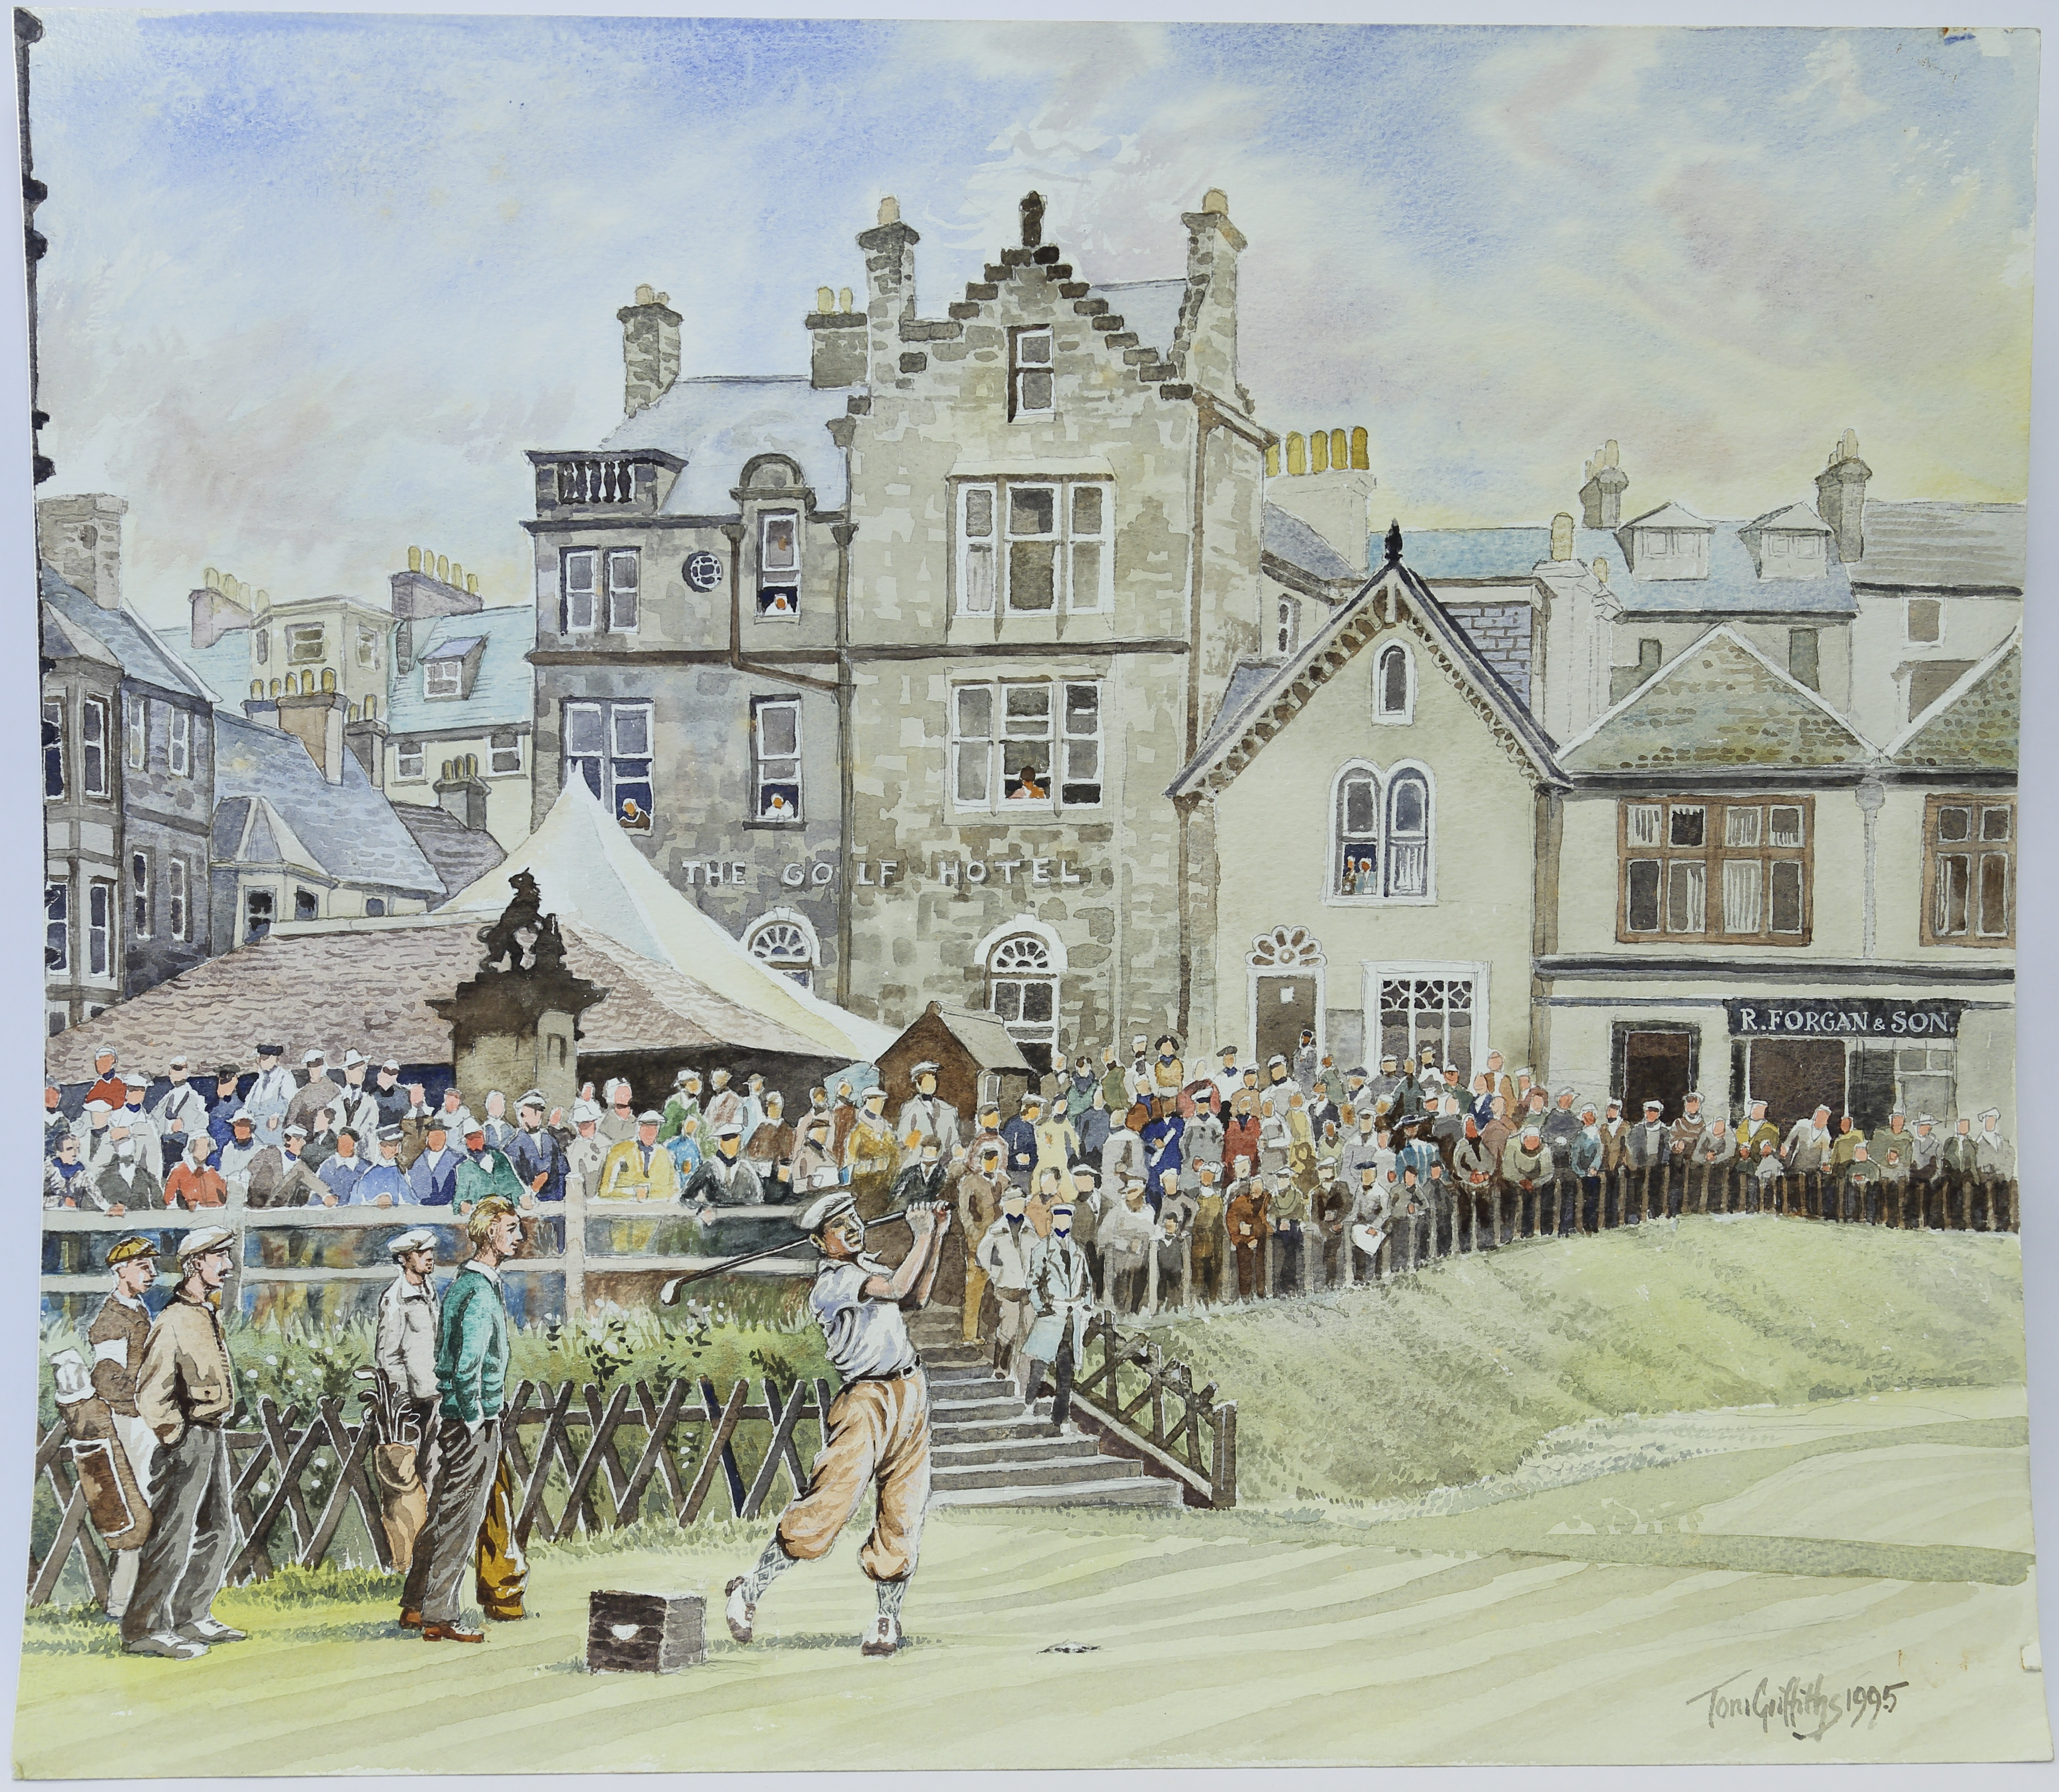 Bobby Locke at St. Andrews by T. Griffiths